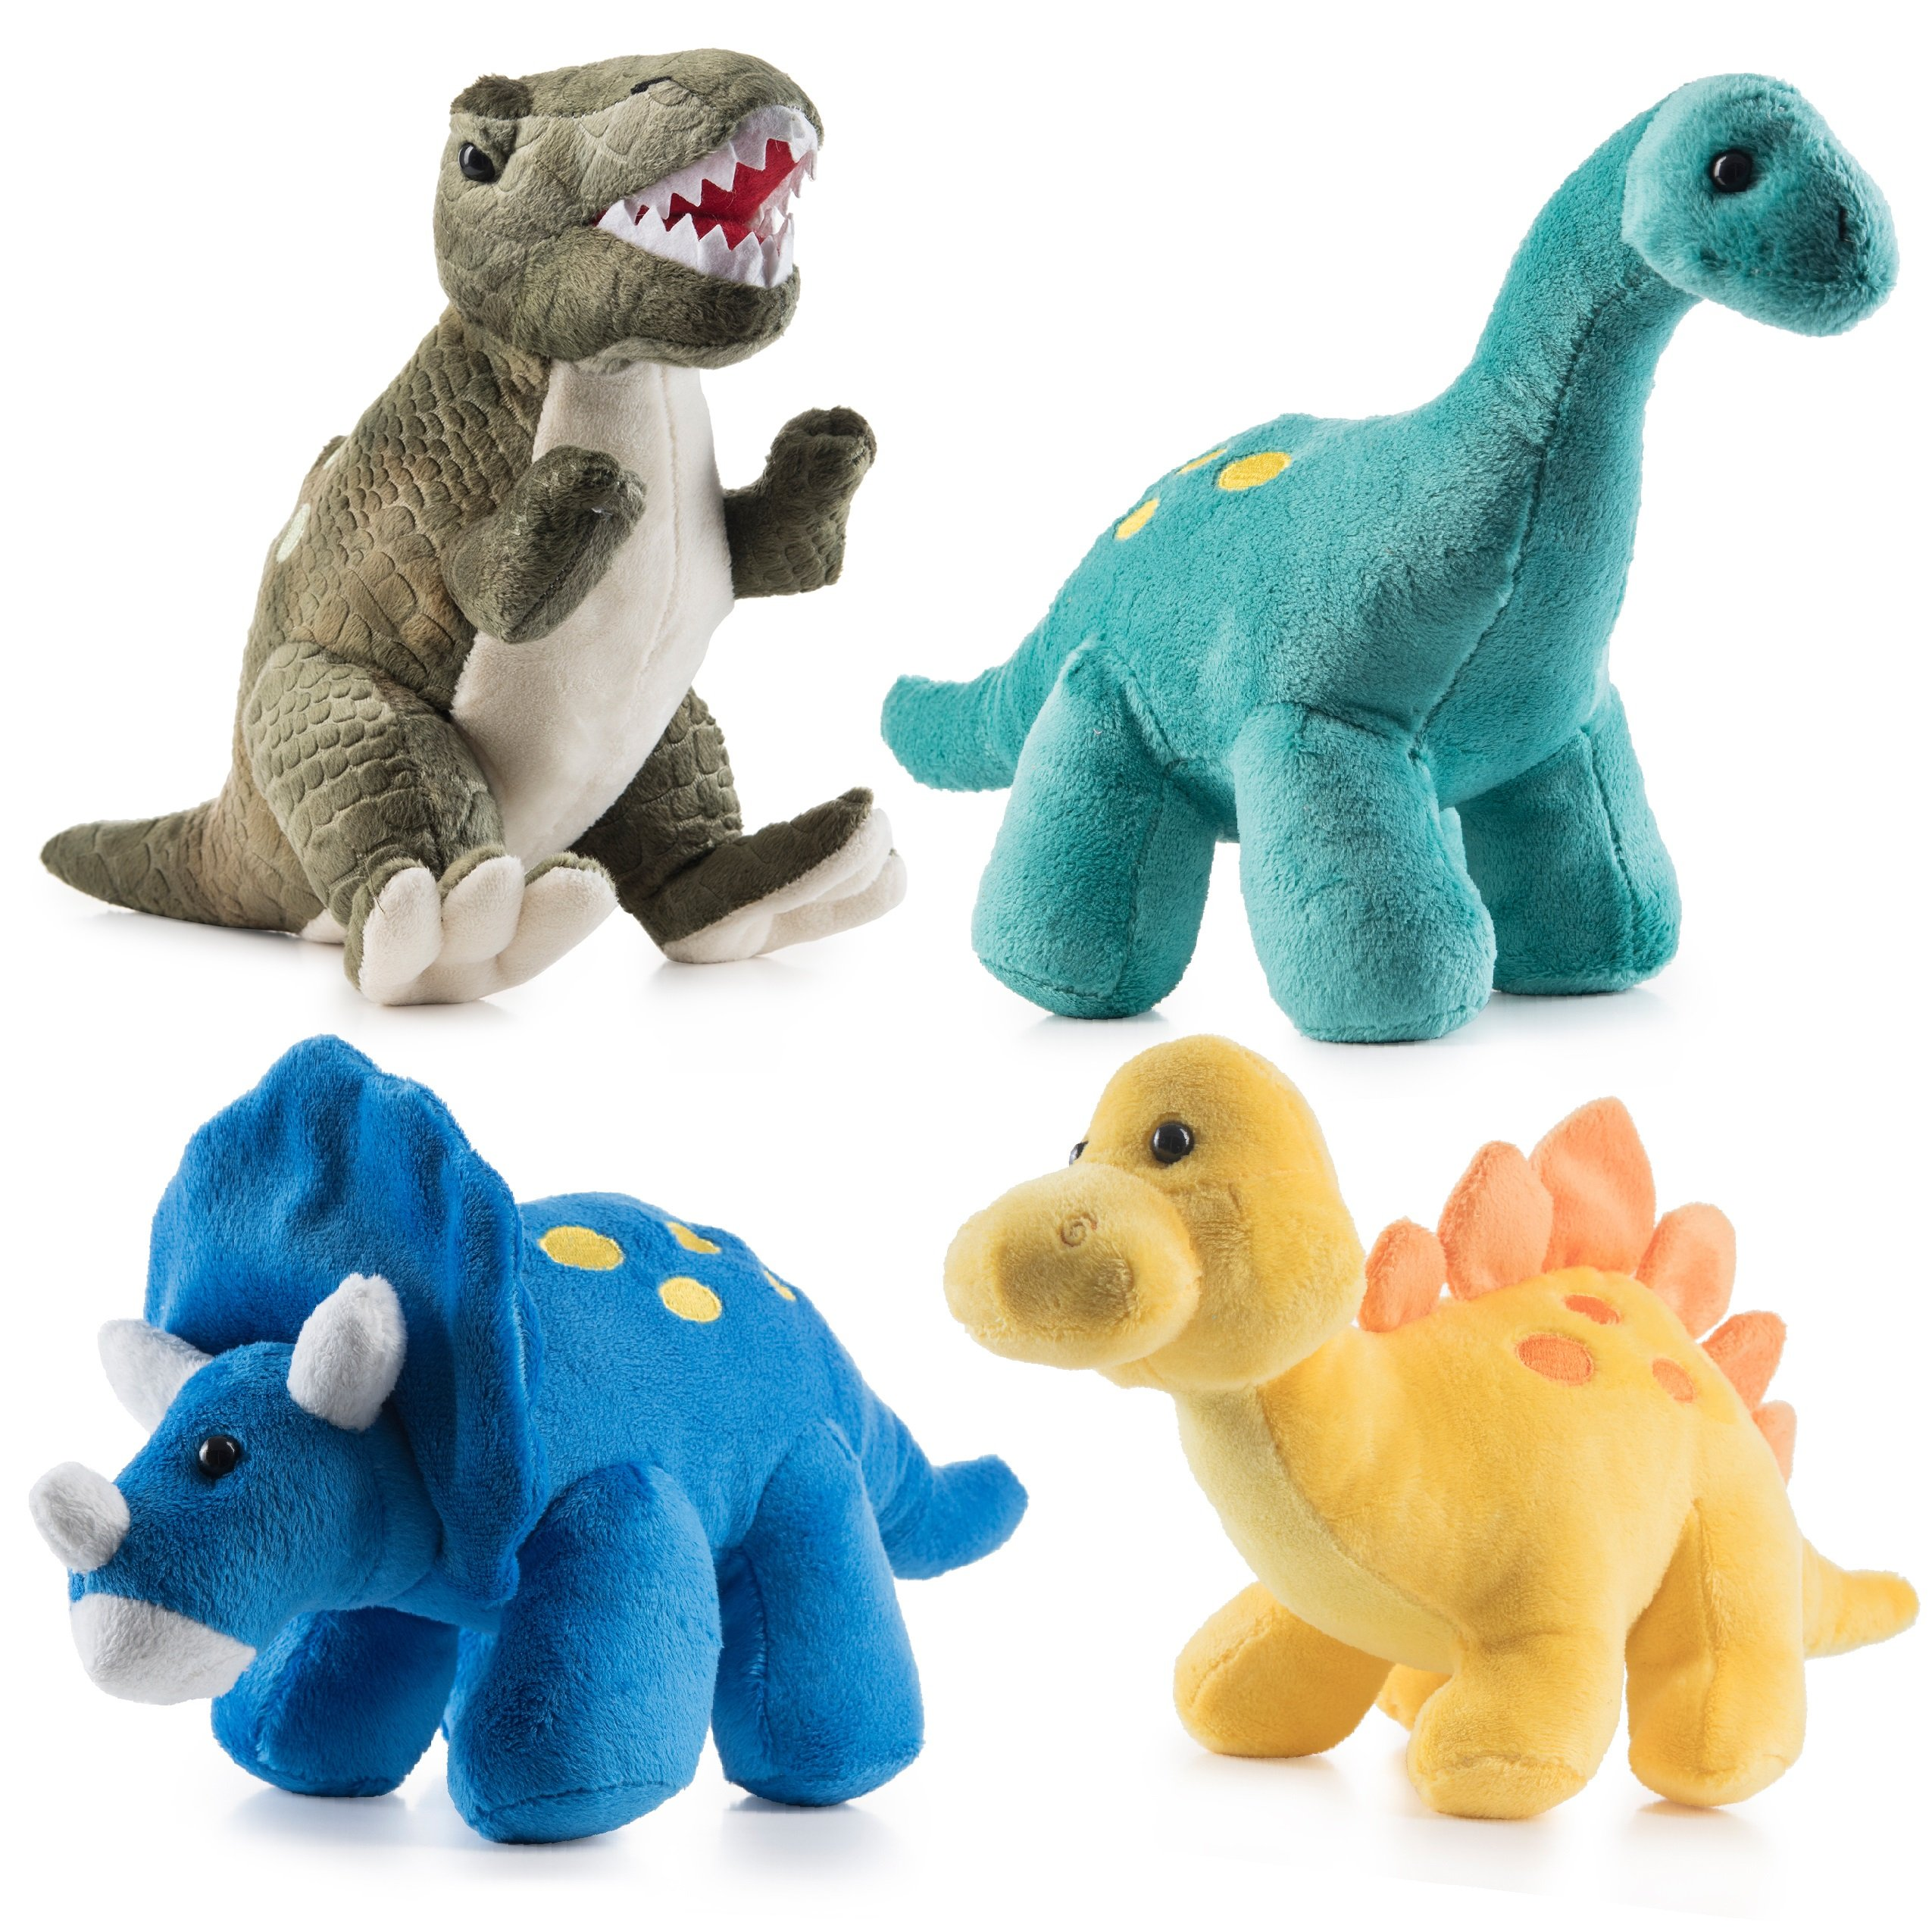 Prextex High Qulity Plush Dinosaurs 4 Pack 10'' Long Great Gift for Kids Stuffed Animal Assortment Great Set for Kids by Prextex